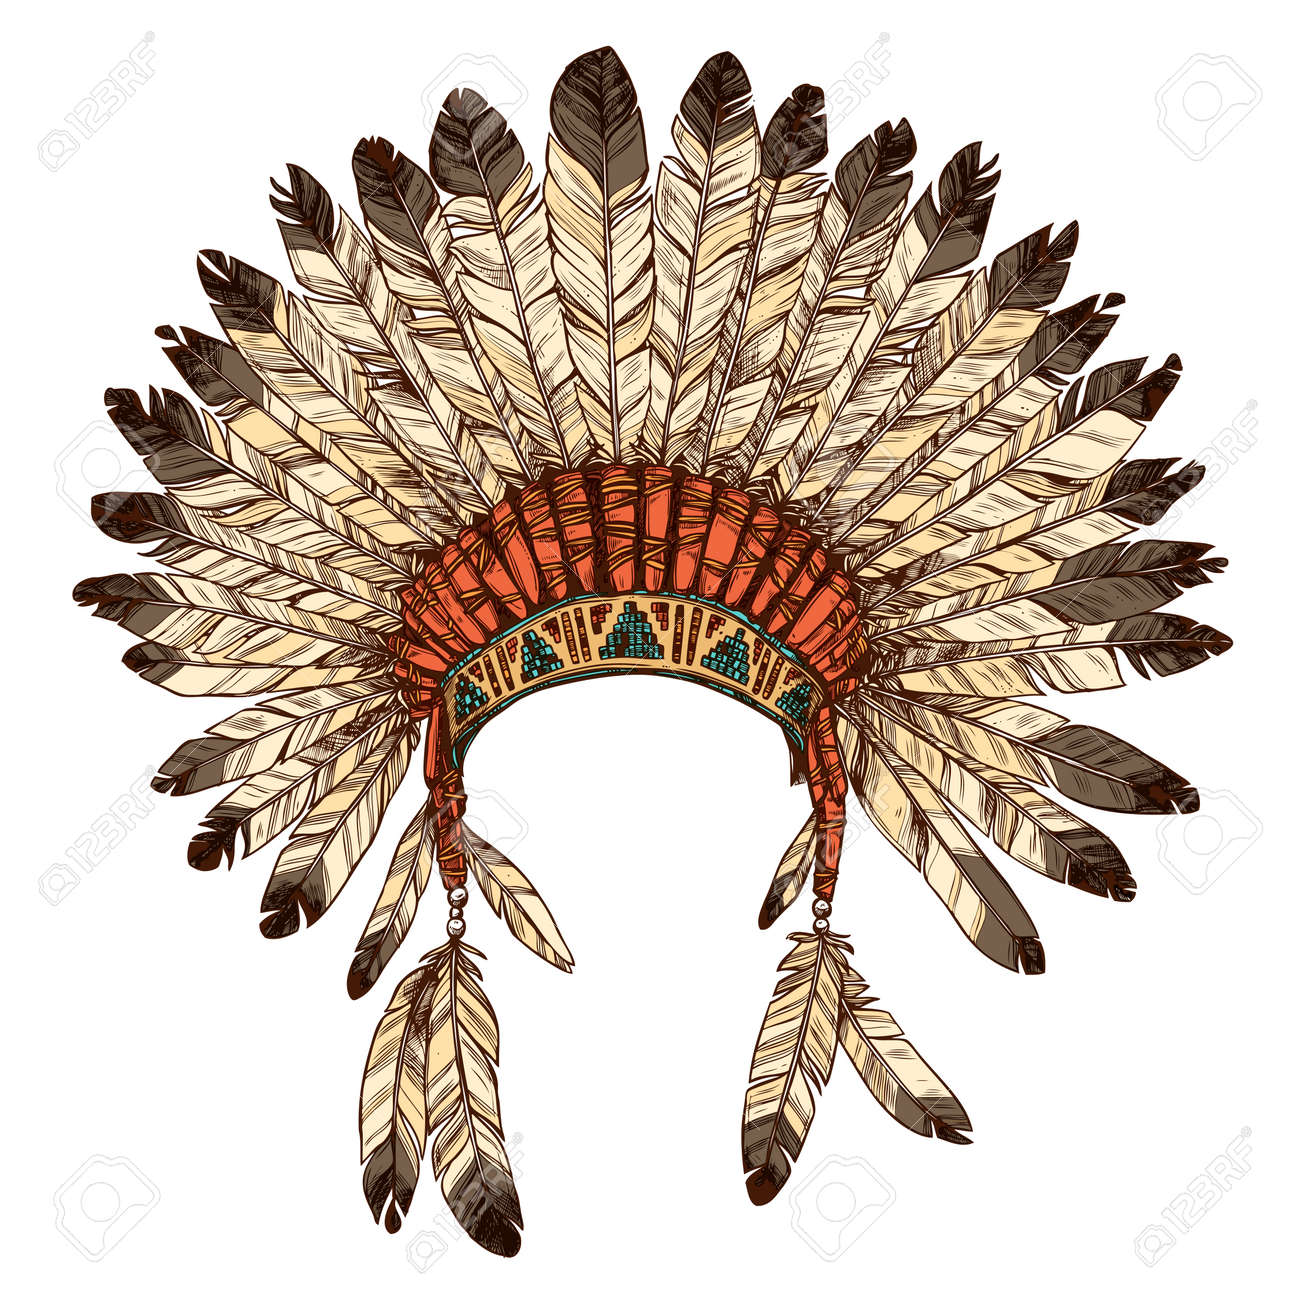 Hand Drawn Native American Indian Headdress Vector Color Illustration Royalty Free Cliparts Vectors And Stock Illustration Image 62122288